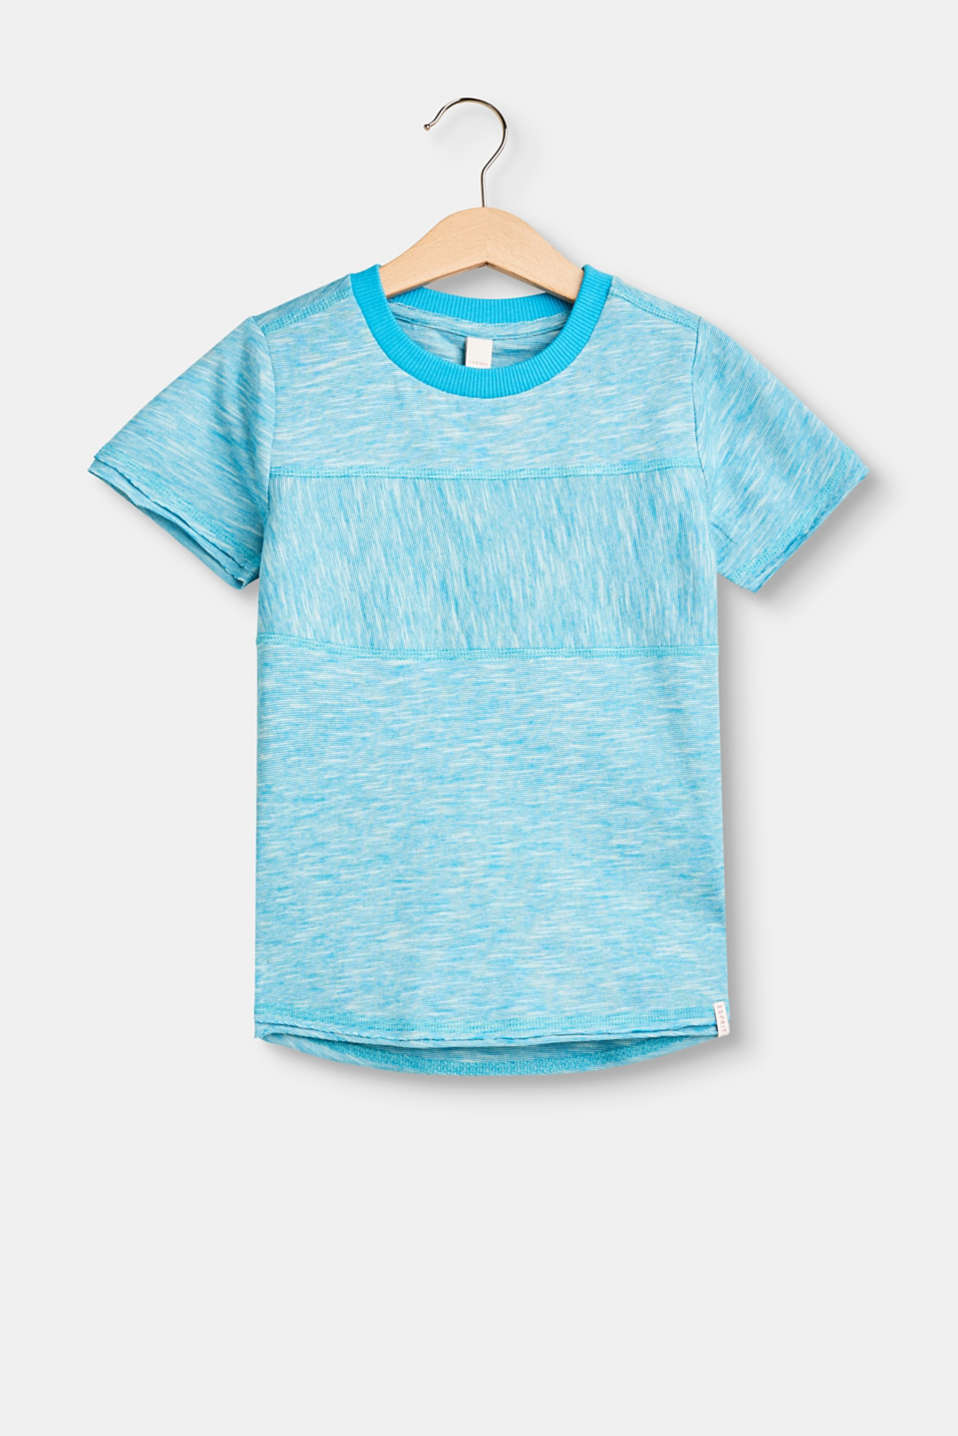 Esprit - Melange slub T-shirt with unfinished rolled edges